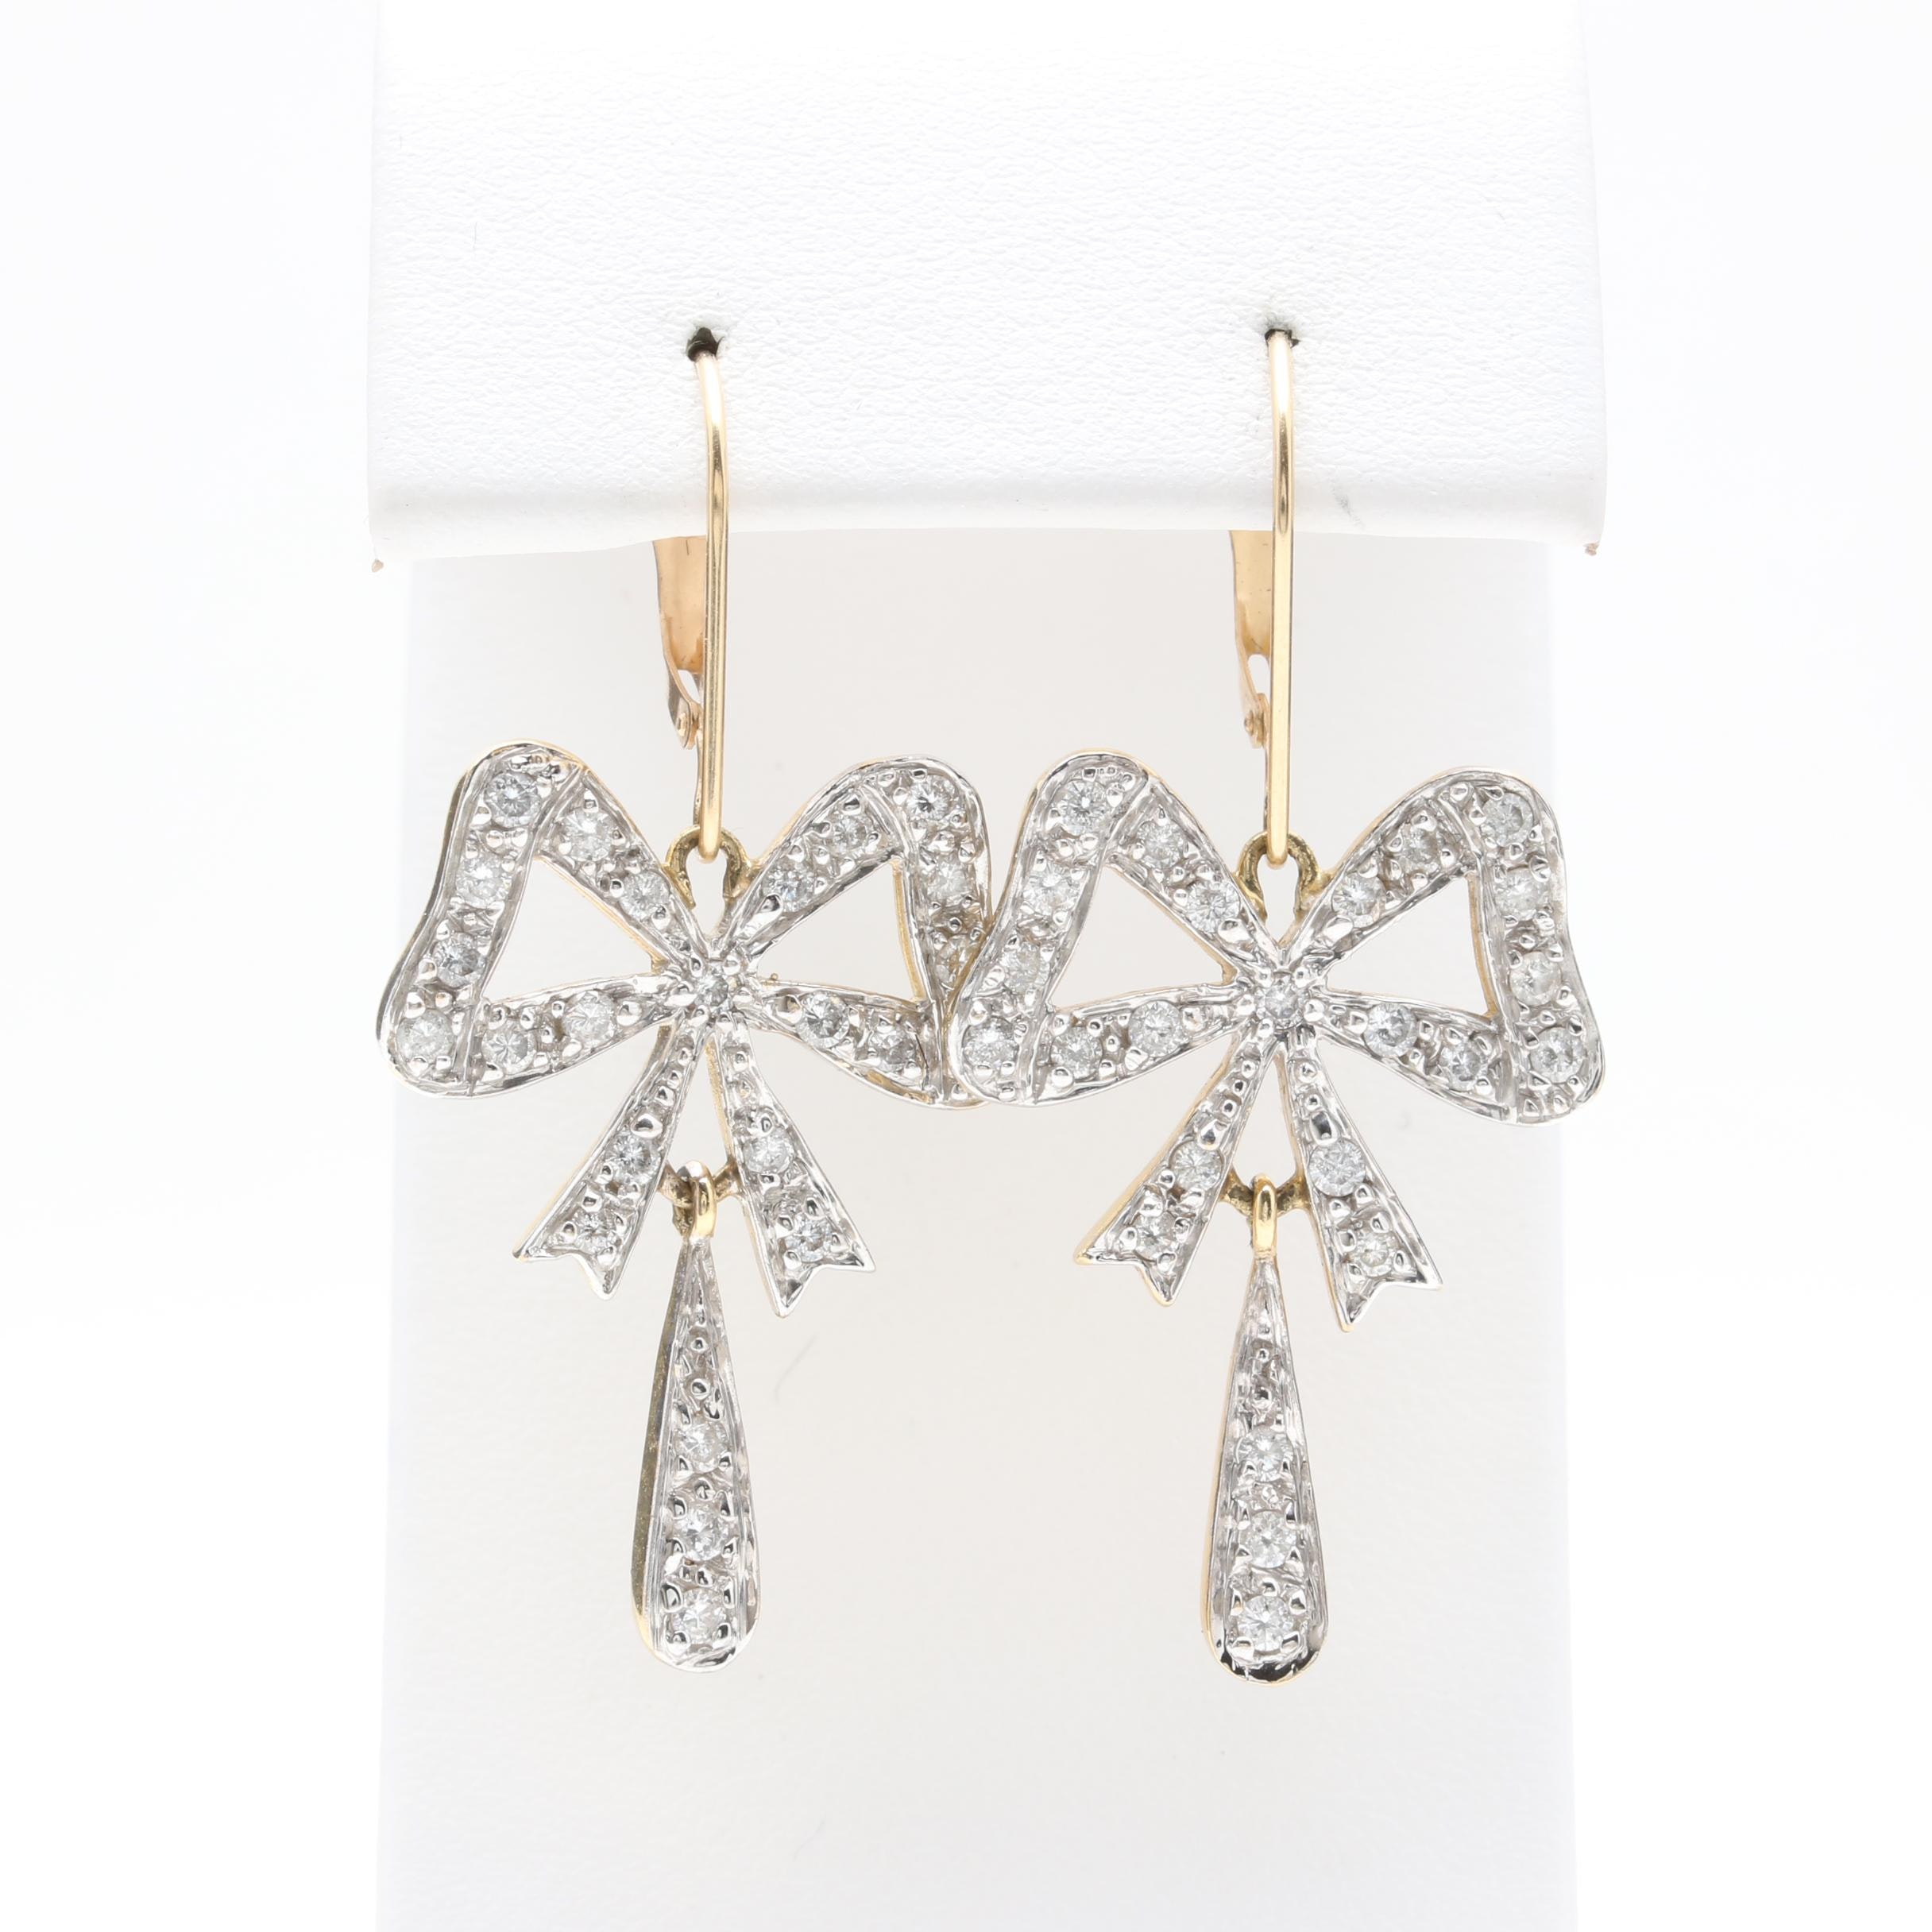 14K Yellow Gold 0.96 CTW Diamond Bow Earrings With White Gold Accents